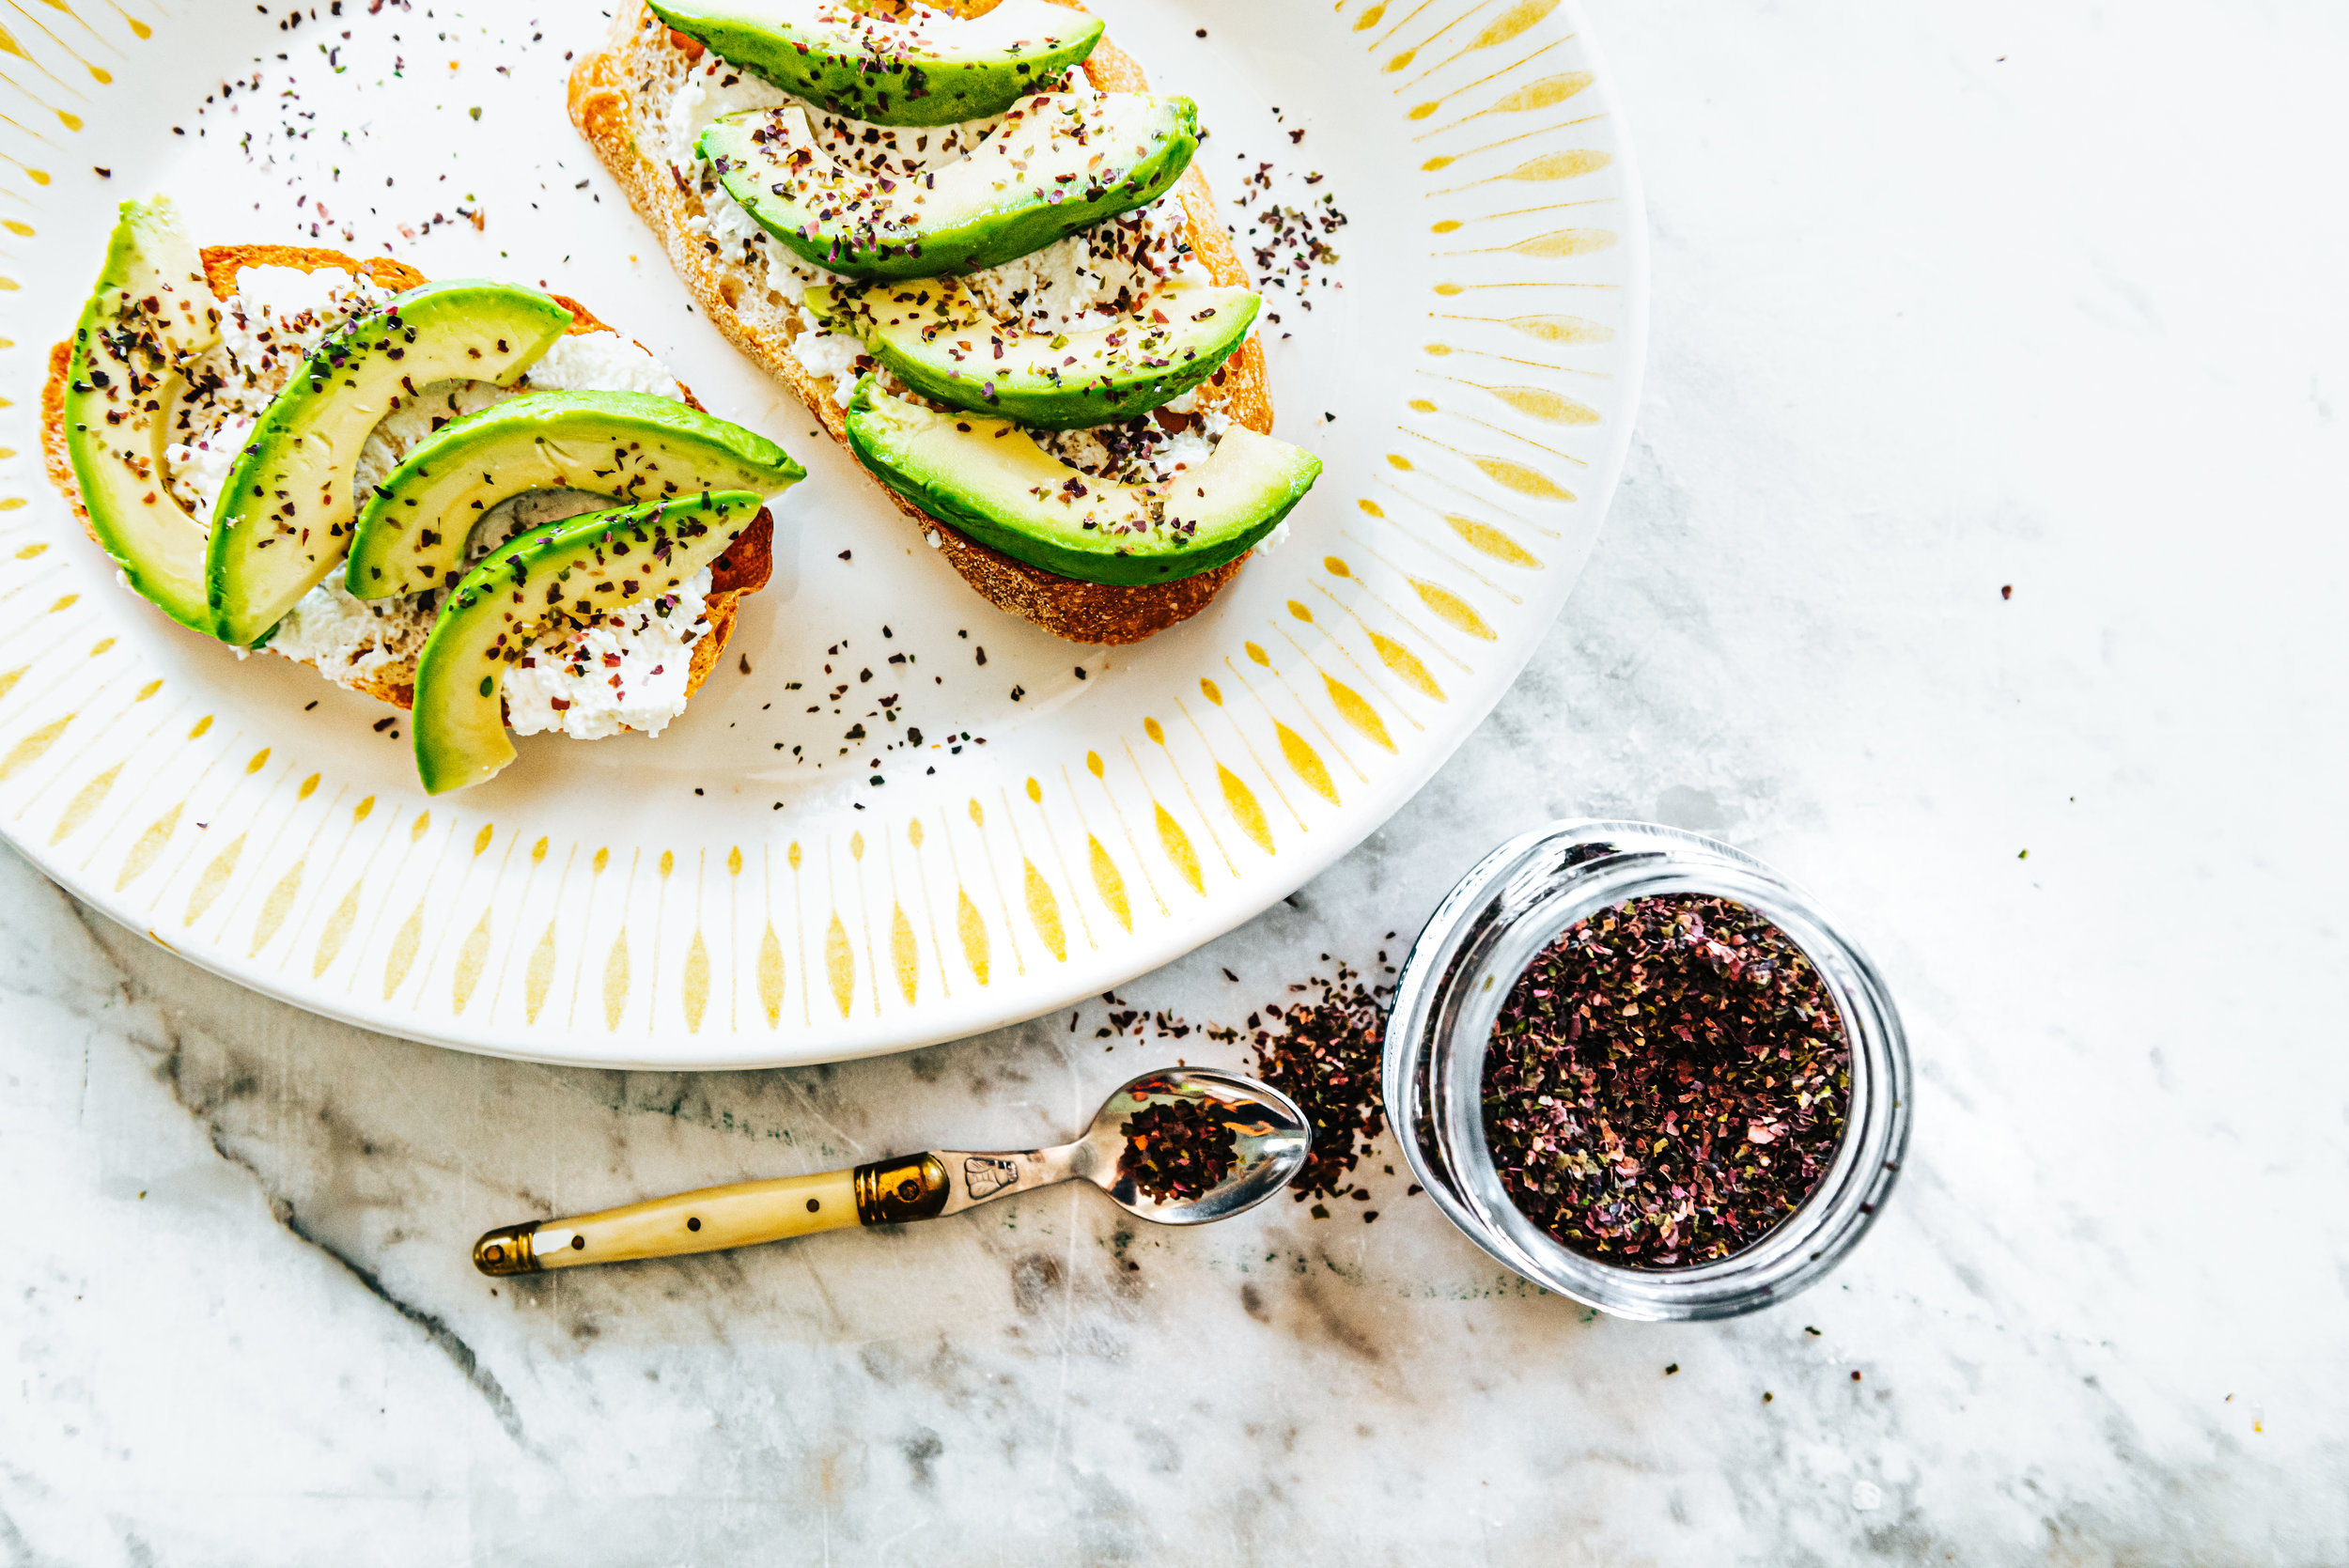 Avocado Toast - - Toast a slice of rustic bread-Spread 2 tablespoons of fresh ricotta cheese- Cover with thinly sliced avocado- Sprinkle with Roasted Seaweed Flakes